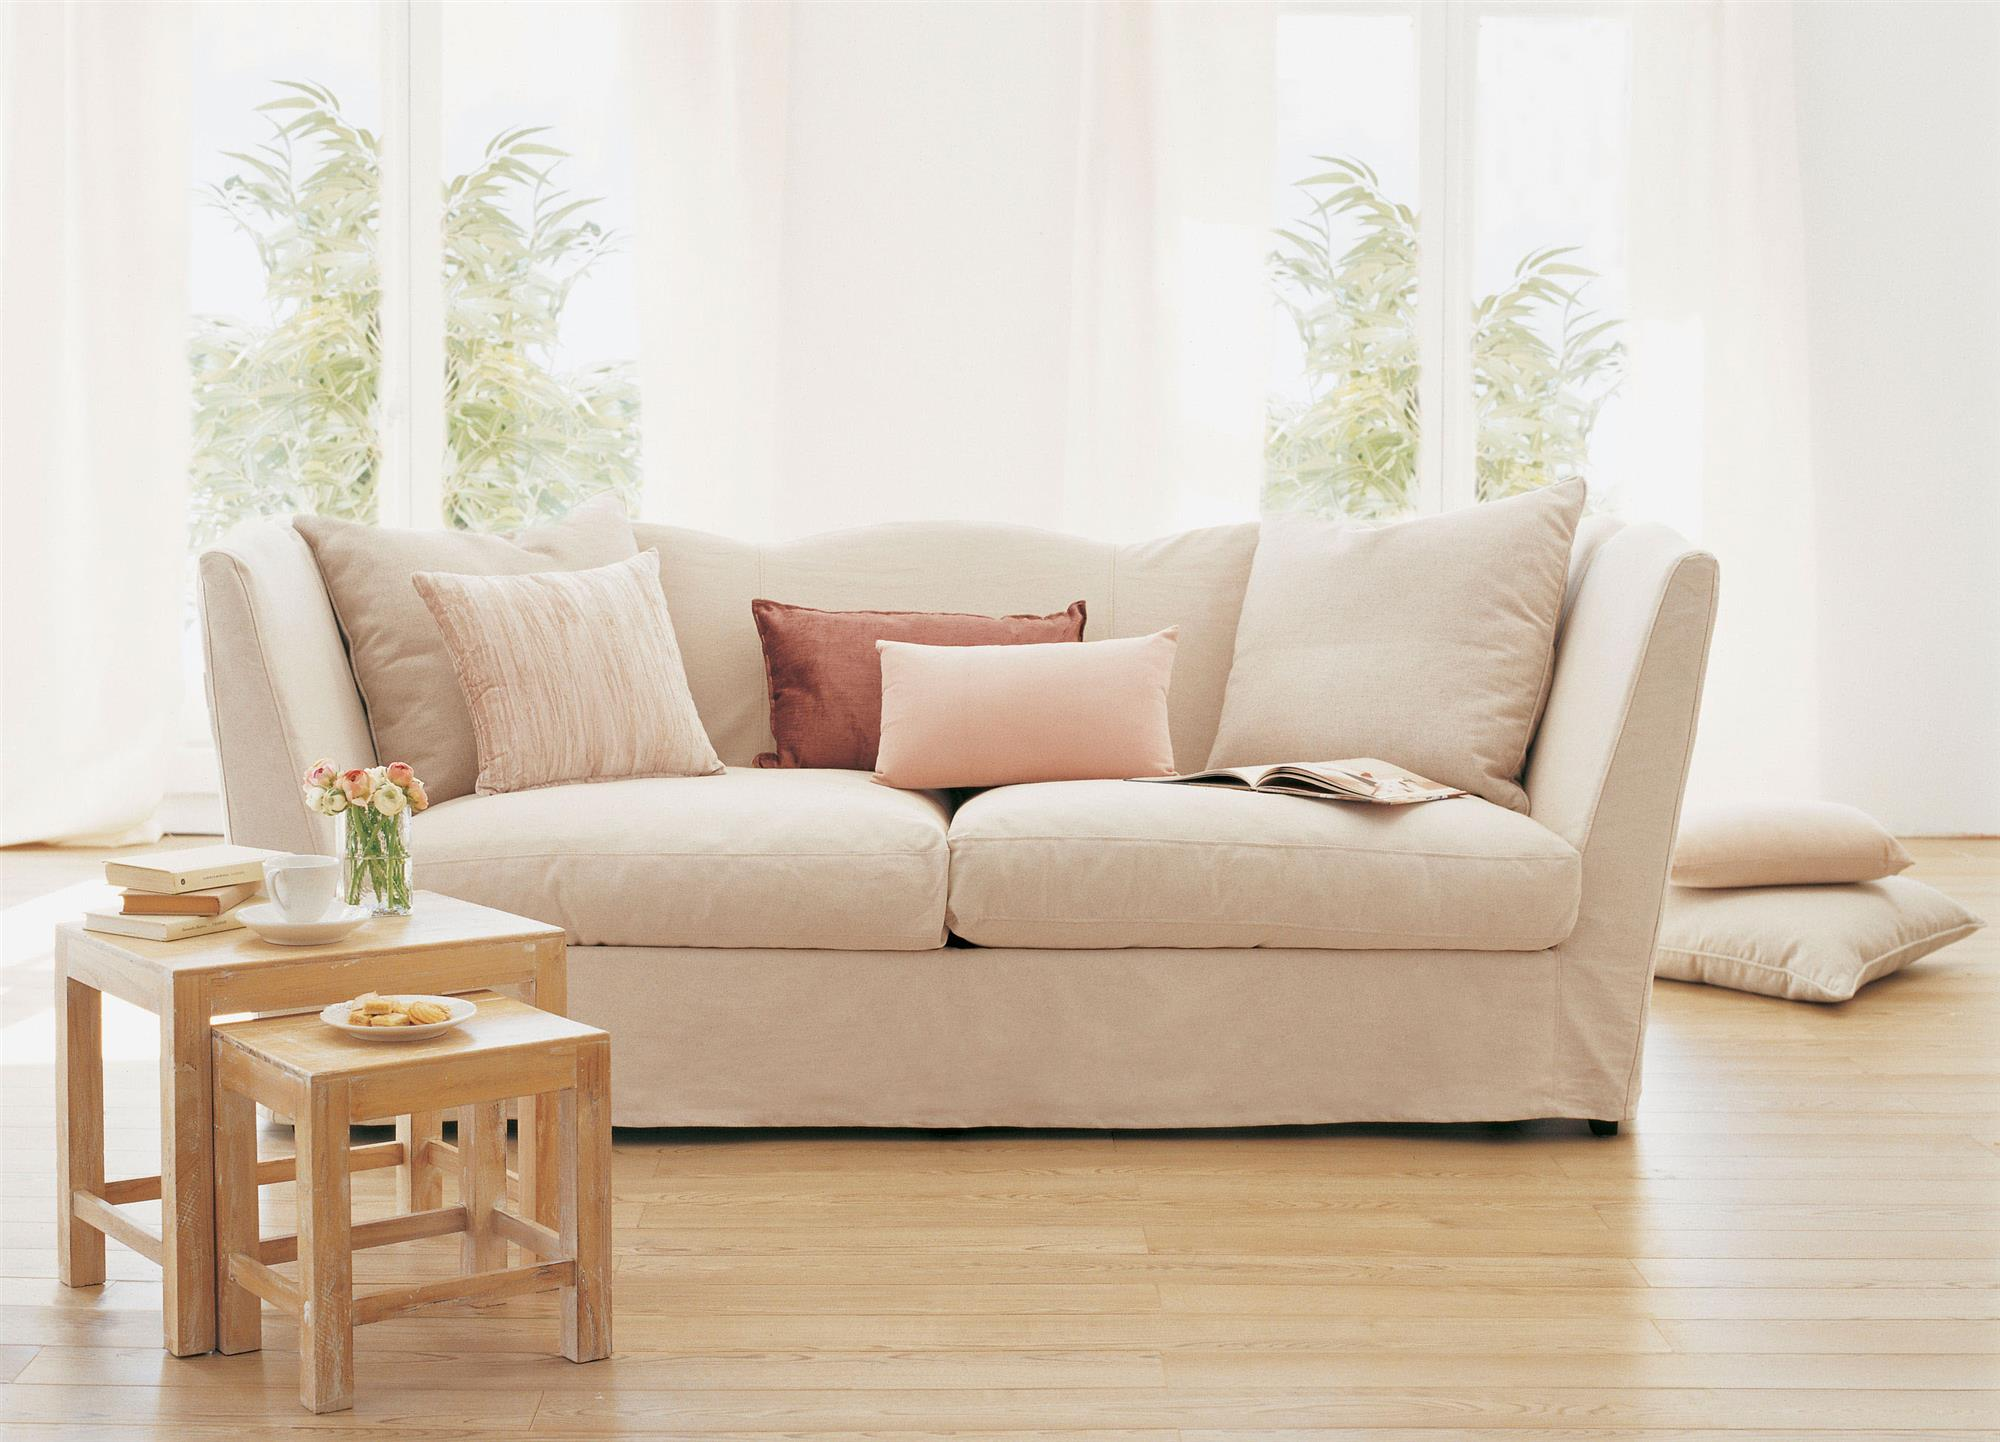 Fundas Para Muebles A Medida 20 Of The Best Ideas For Forros Para Sofa - Best